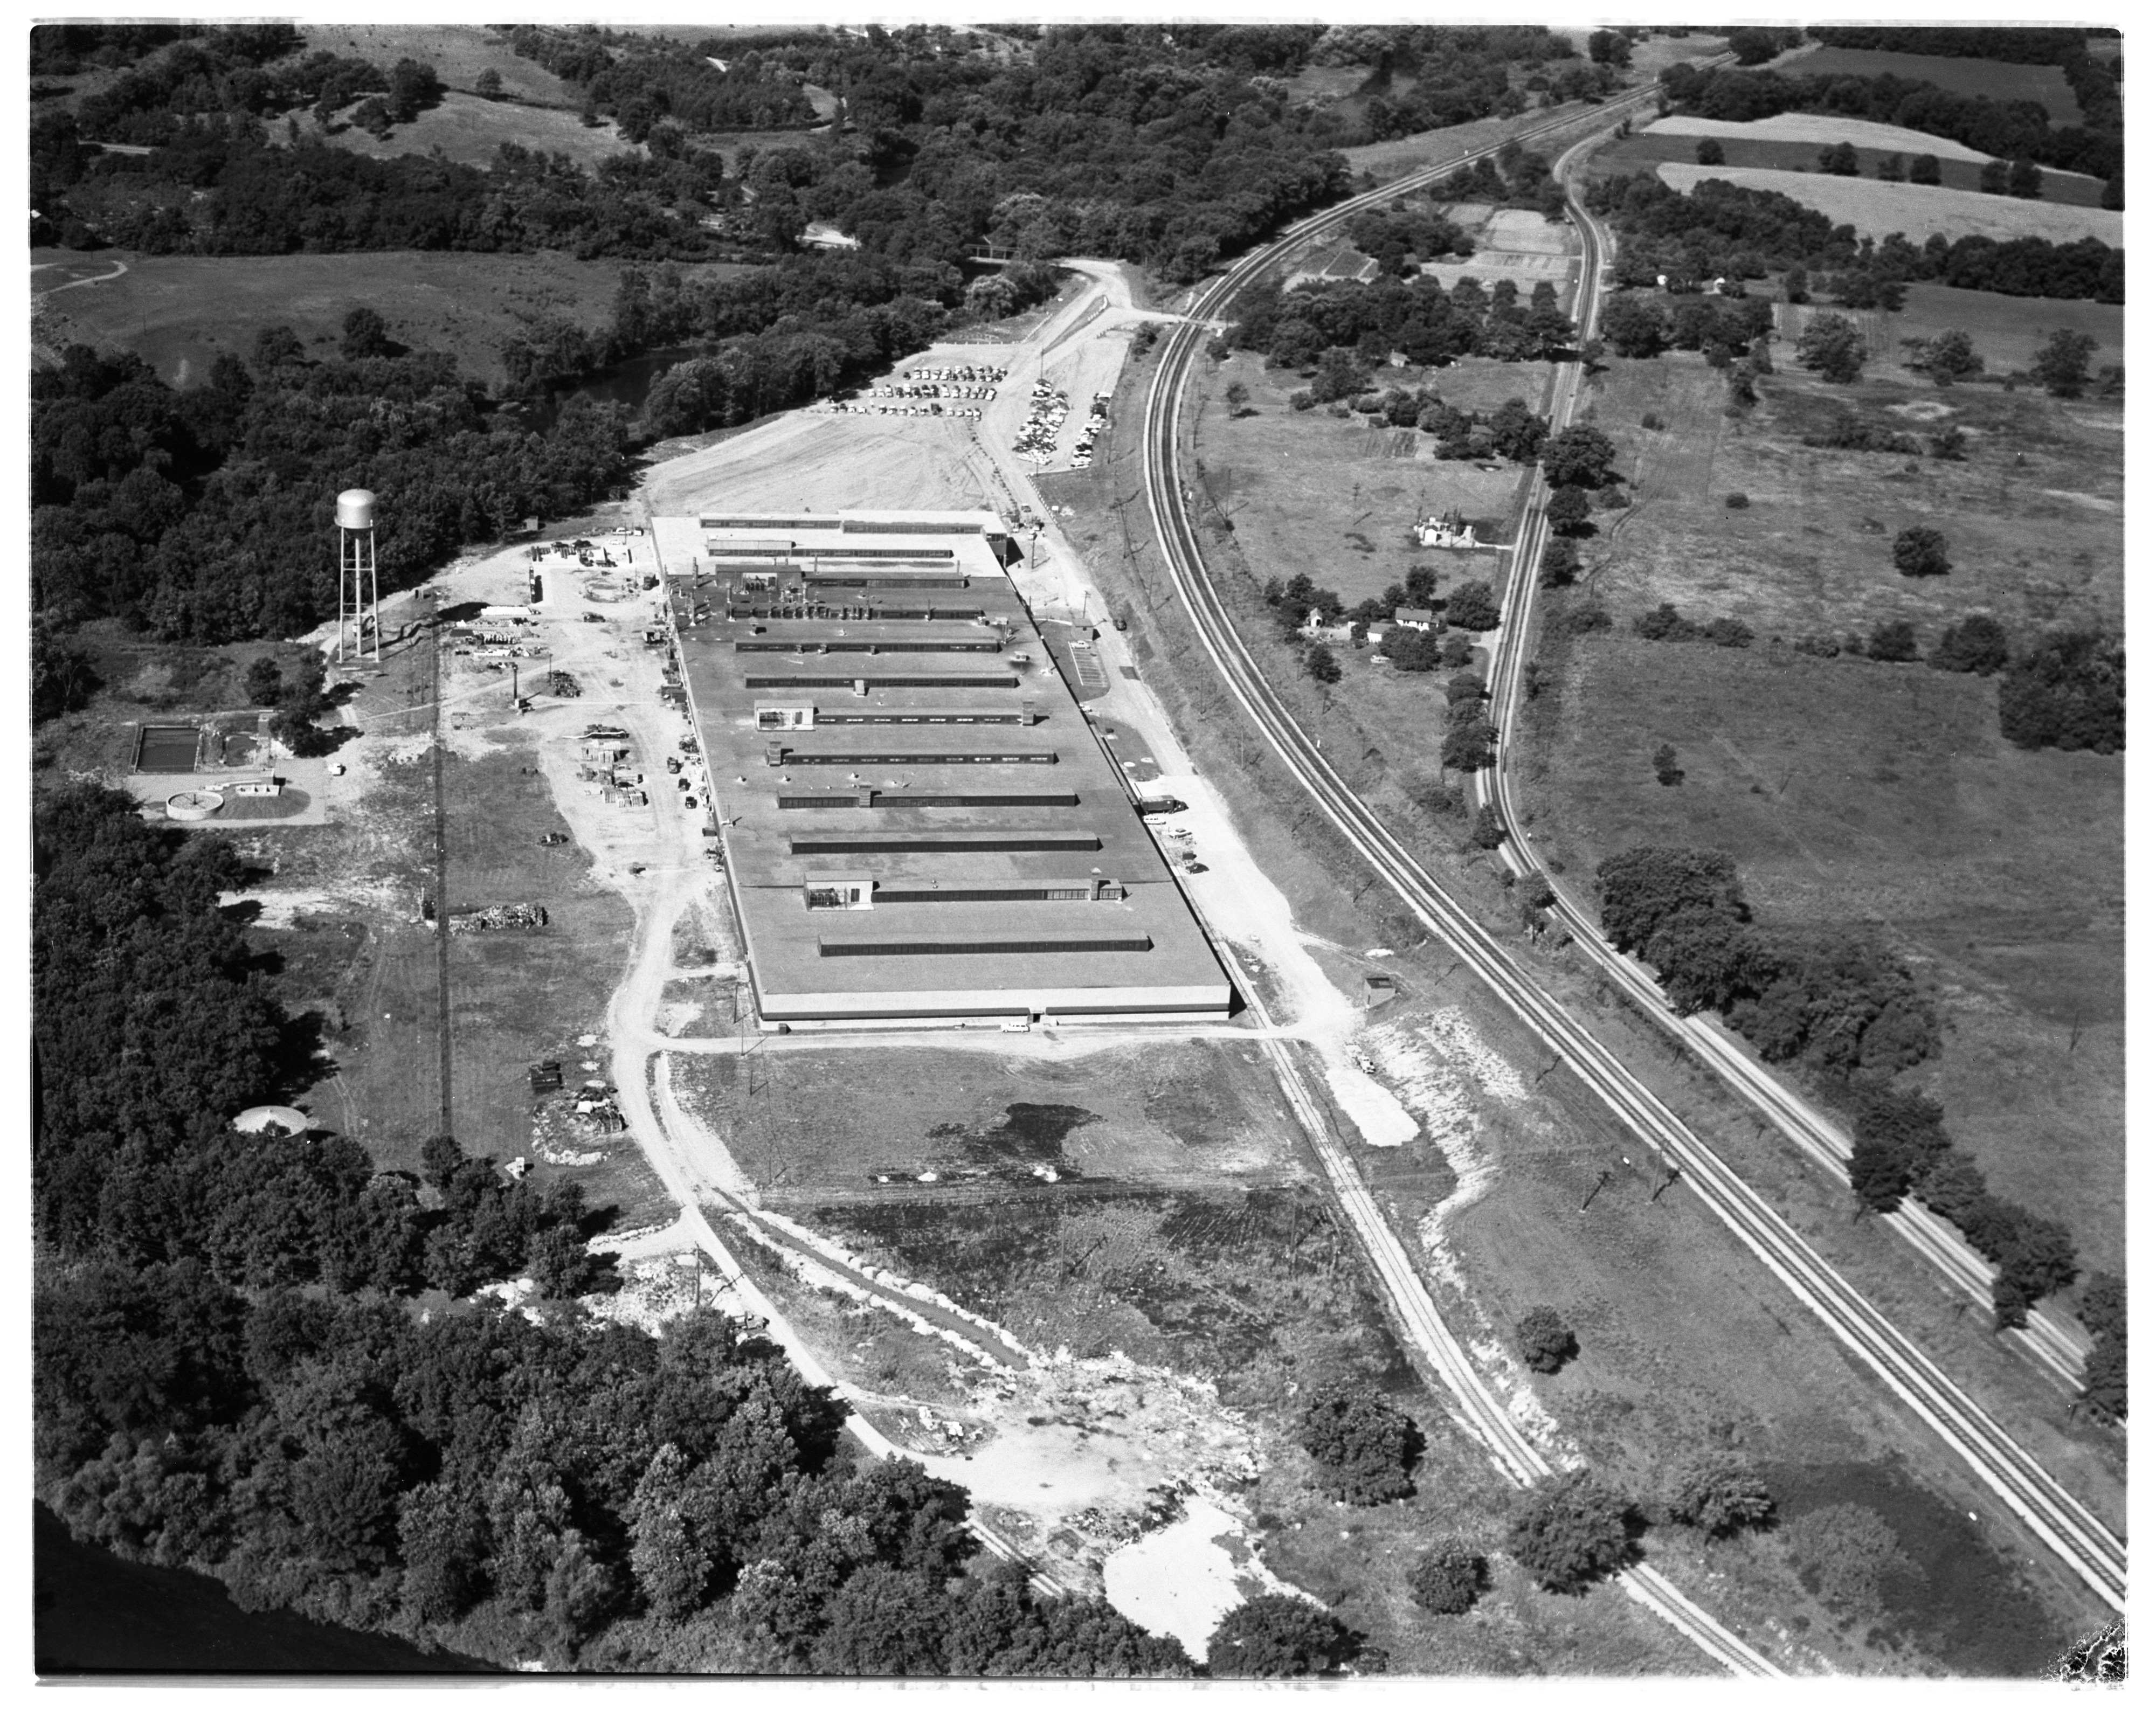 Aerial Photograph of the King-Seeley Scio Plant, Scio Township, August 1956 image